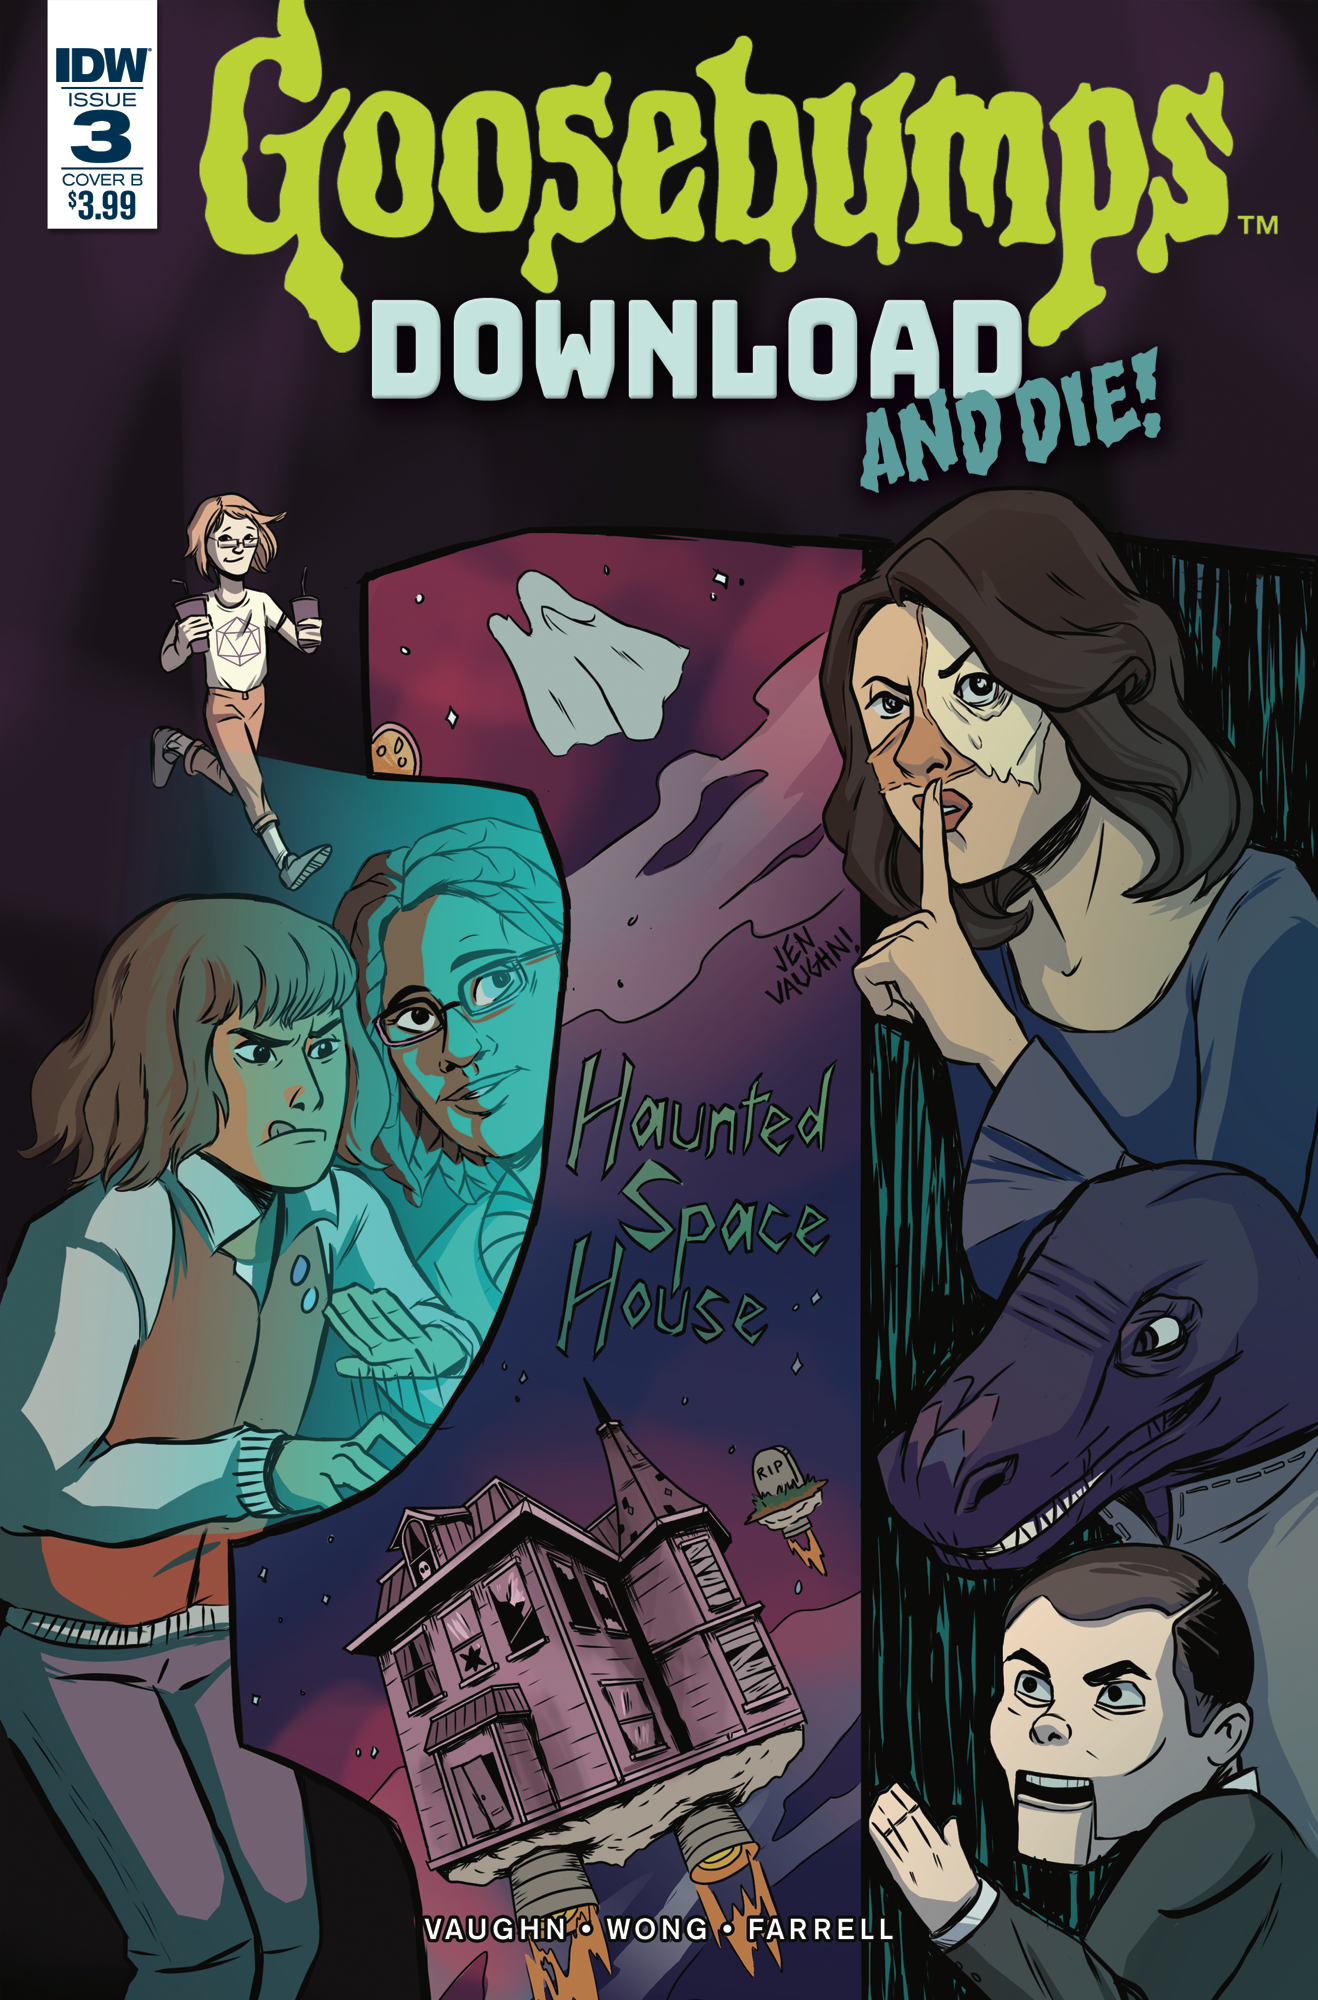 GOOSEBUMPS DOWNLOAD & DIE #3 CVR B VAUGHN